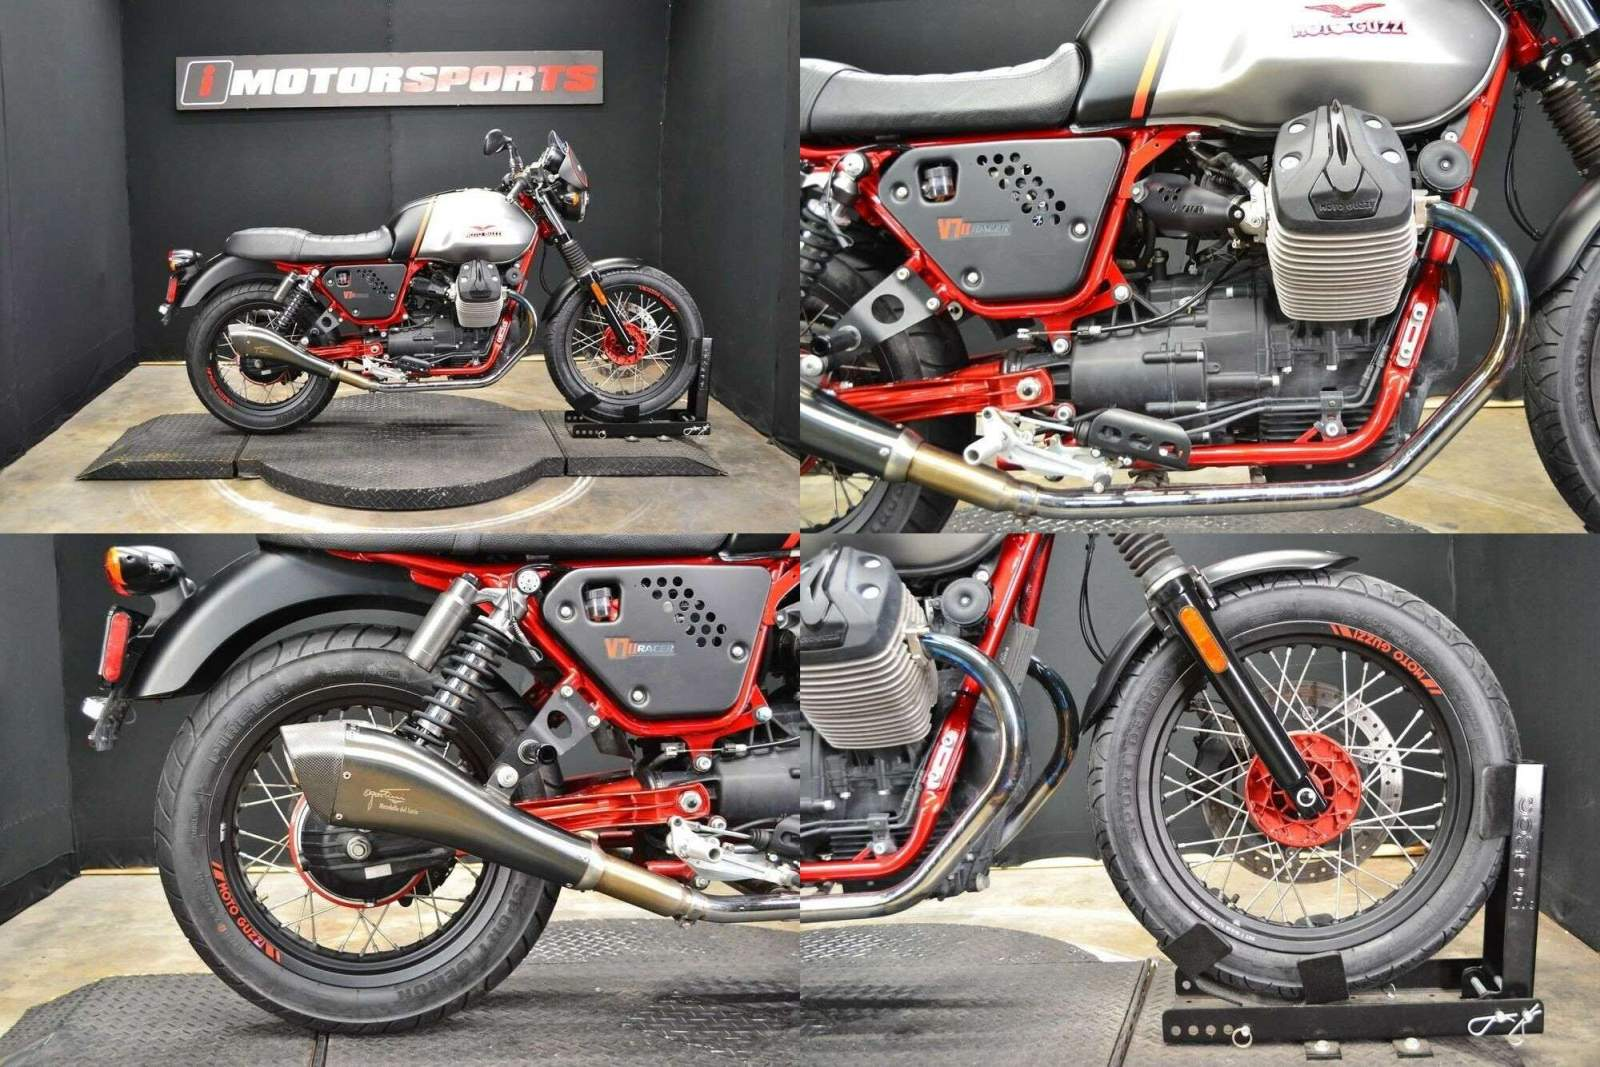 2016 Moto Guzzi V7 II Racer ABS BLK / GRY used for sale near me